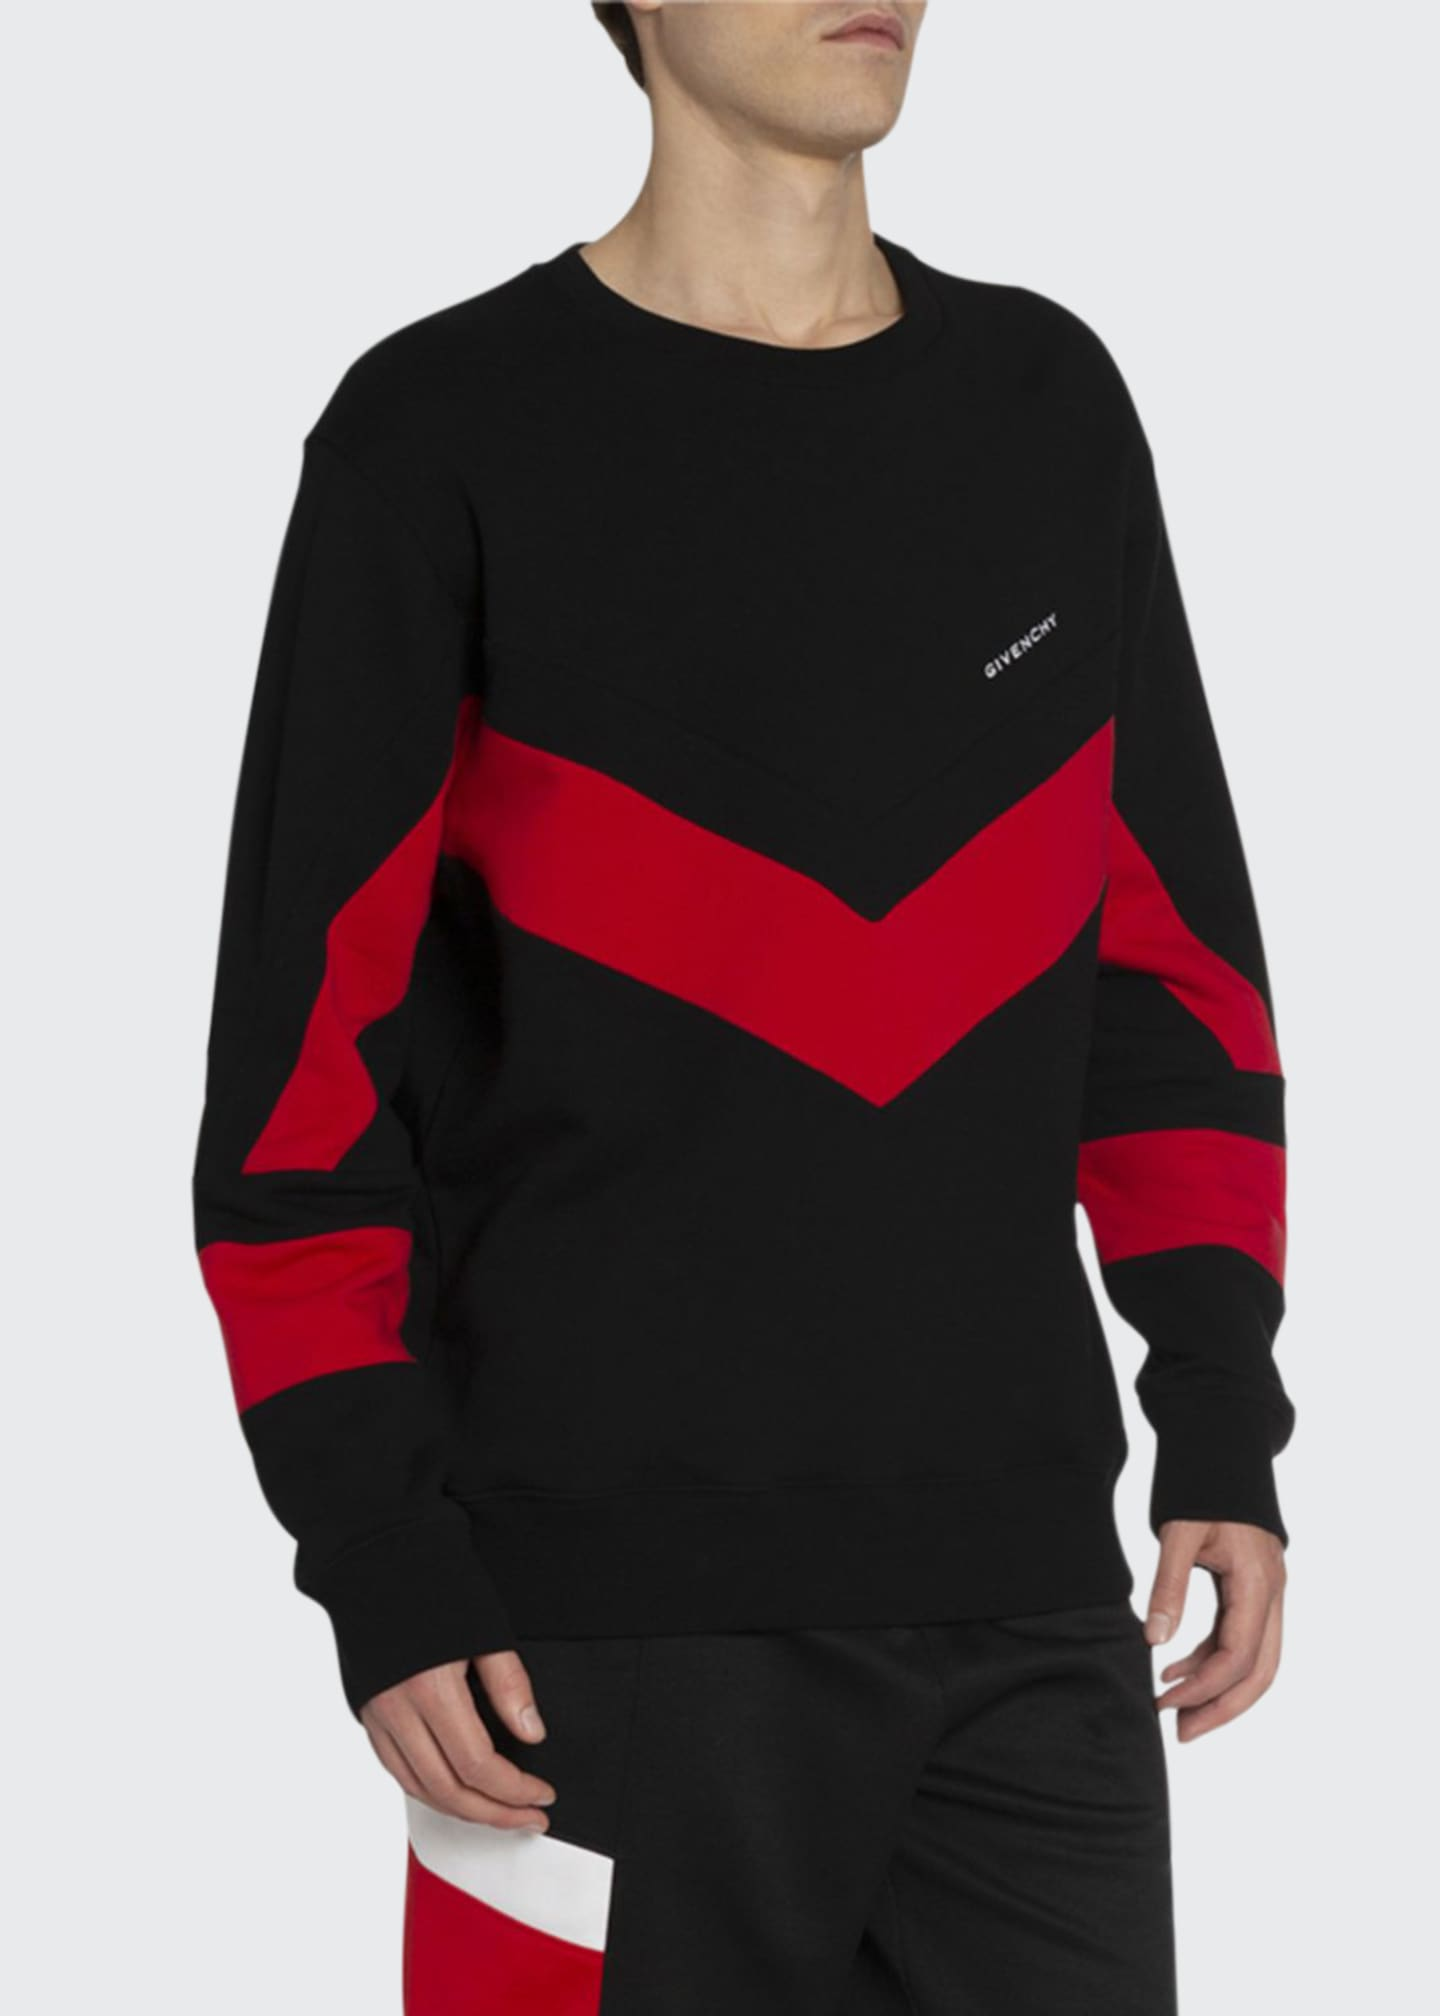 Givenchy Men's Banded Sport Sweatshirt